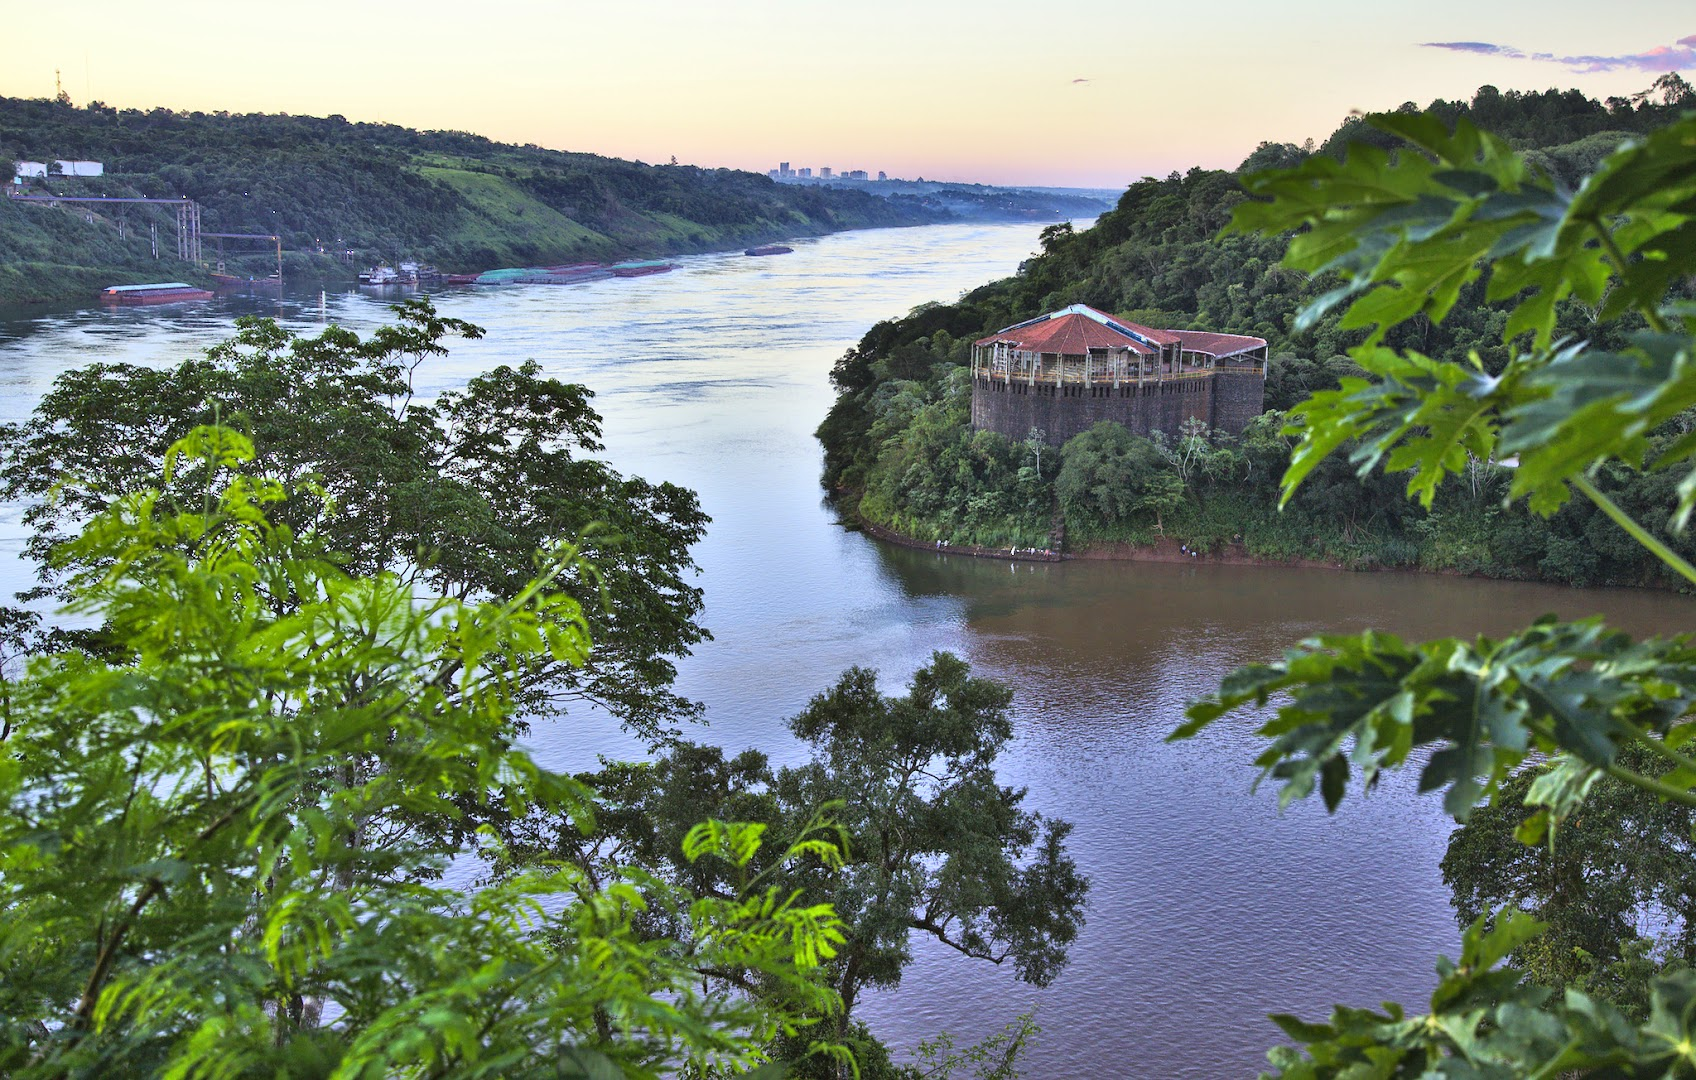 Tres fronteras - where Argentina, Brazil (accross) and Paraguay (left) meet